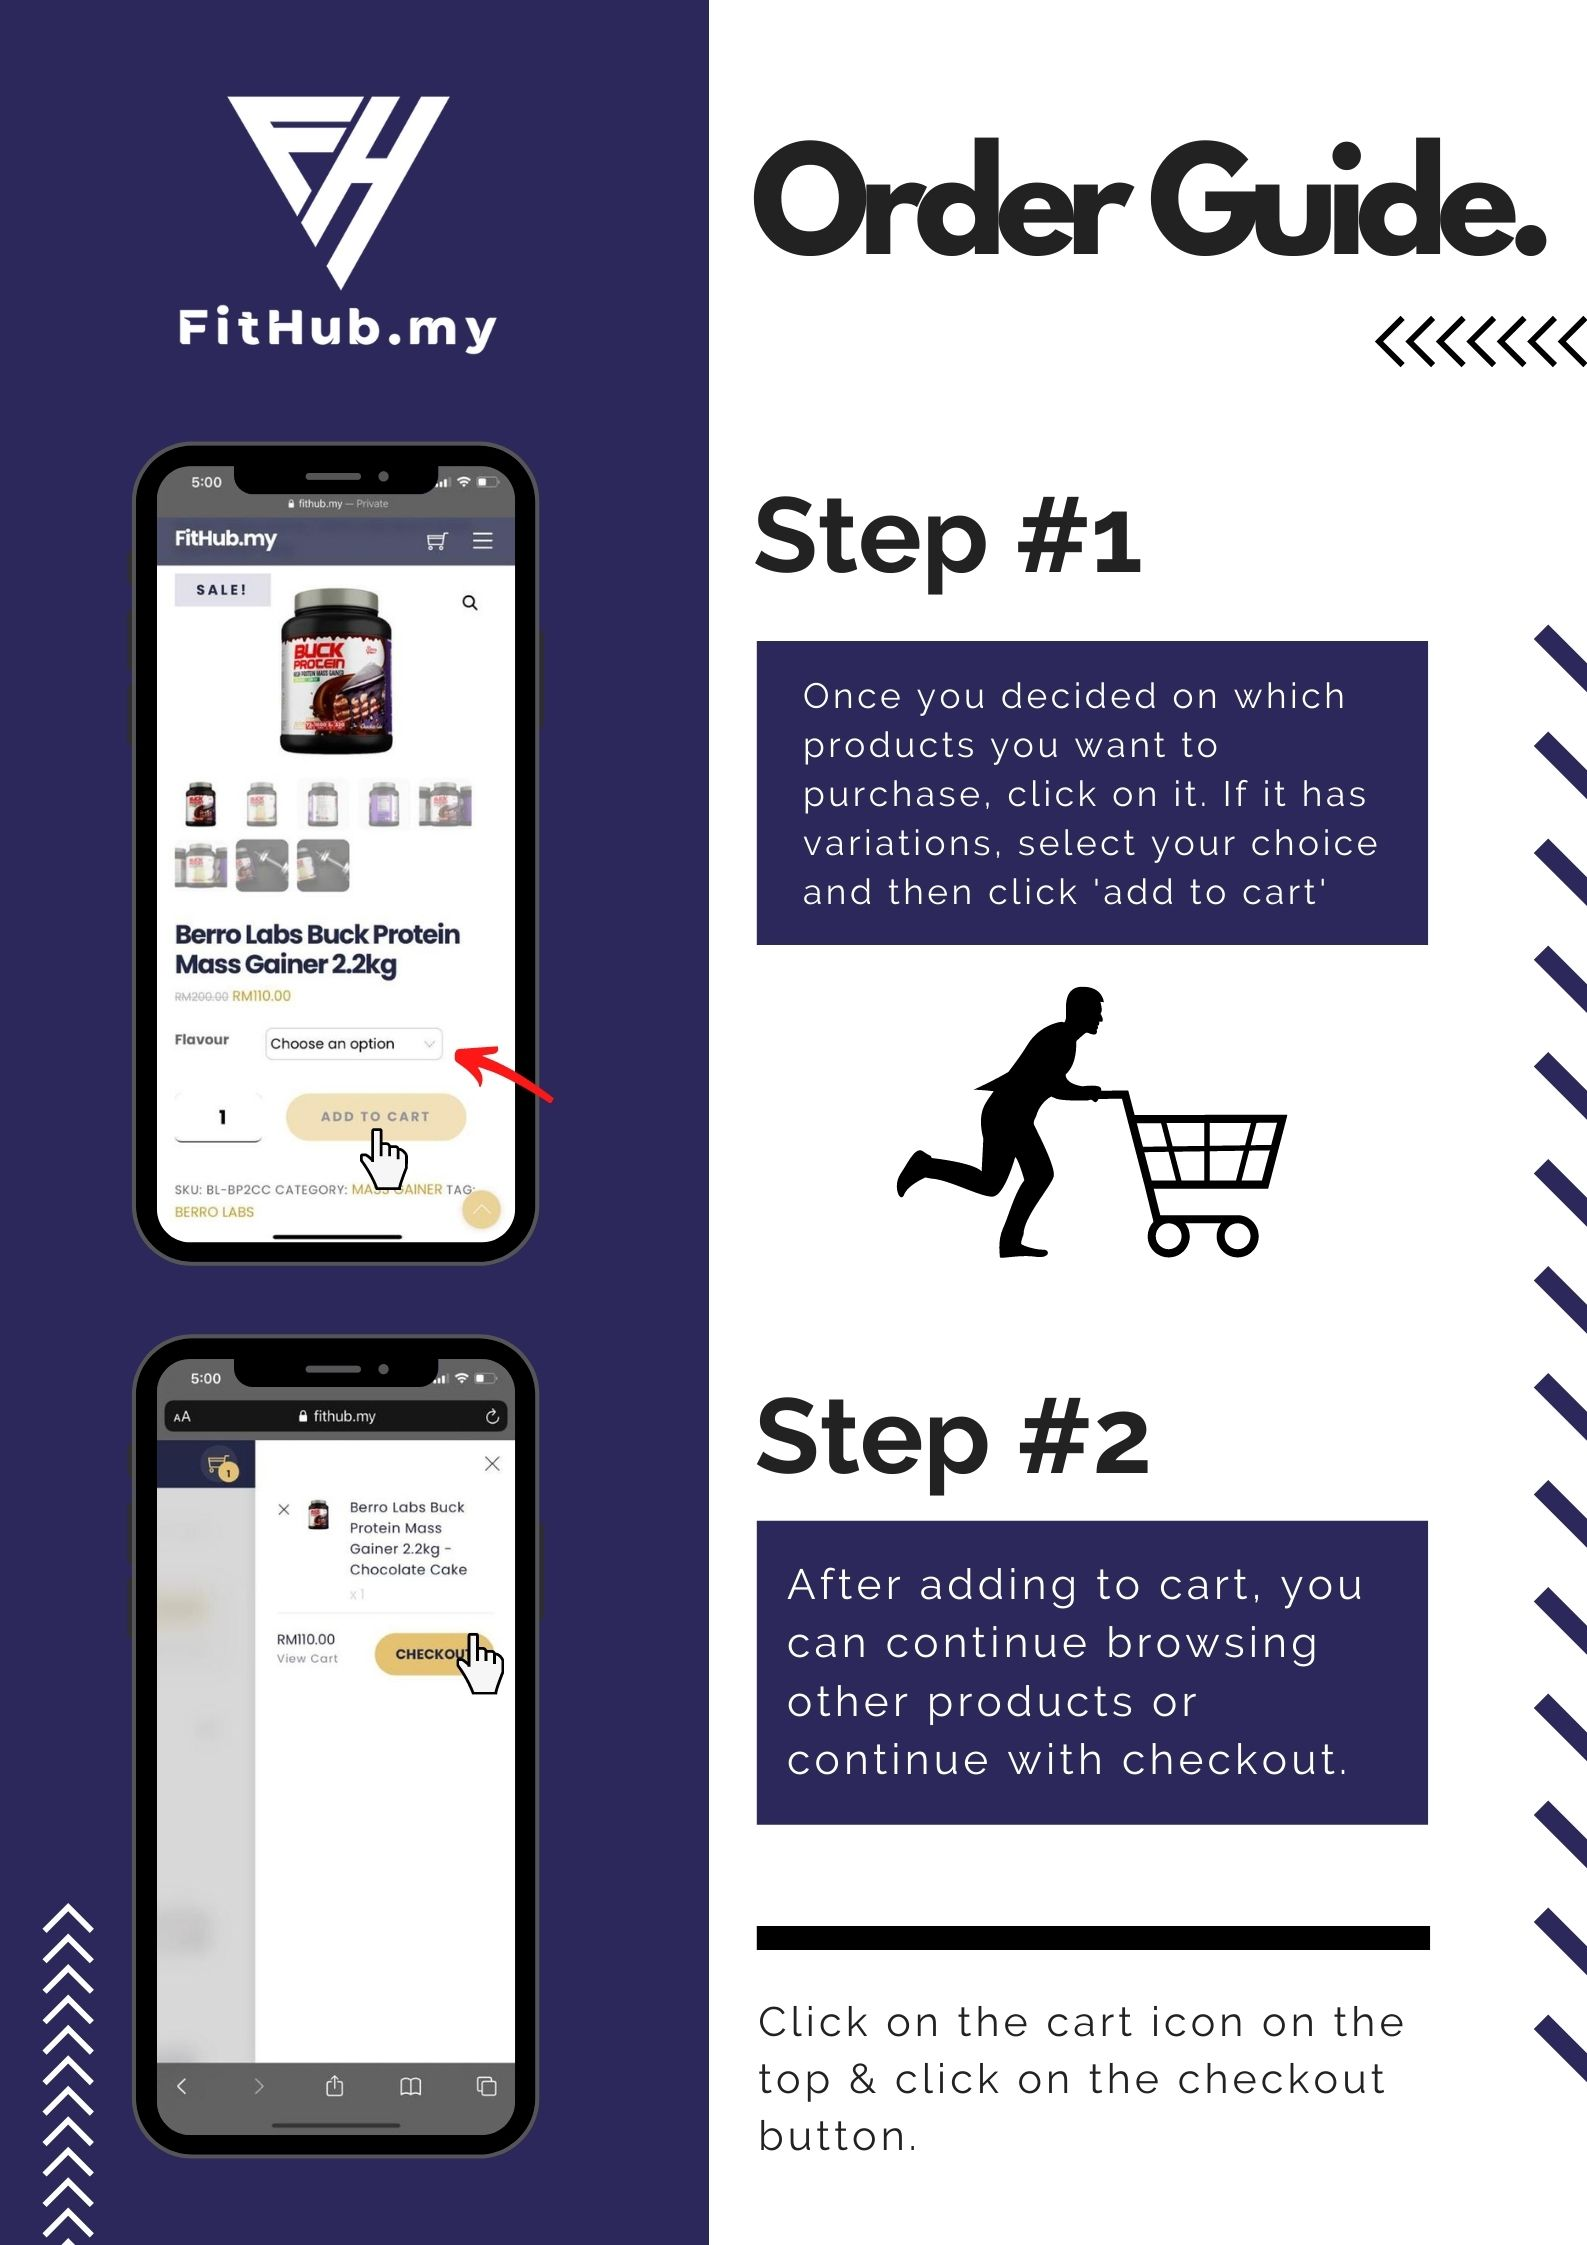 Fithub.my Order Guide.